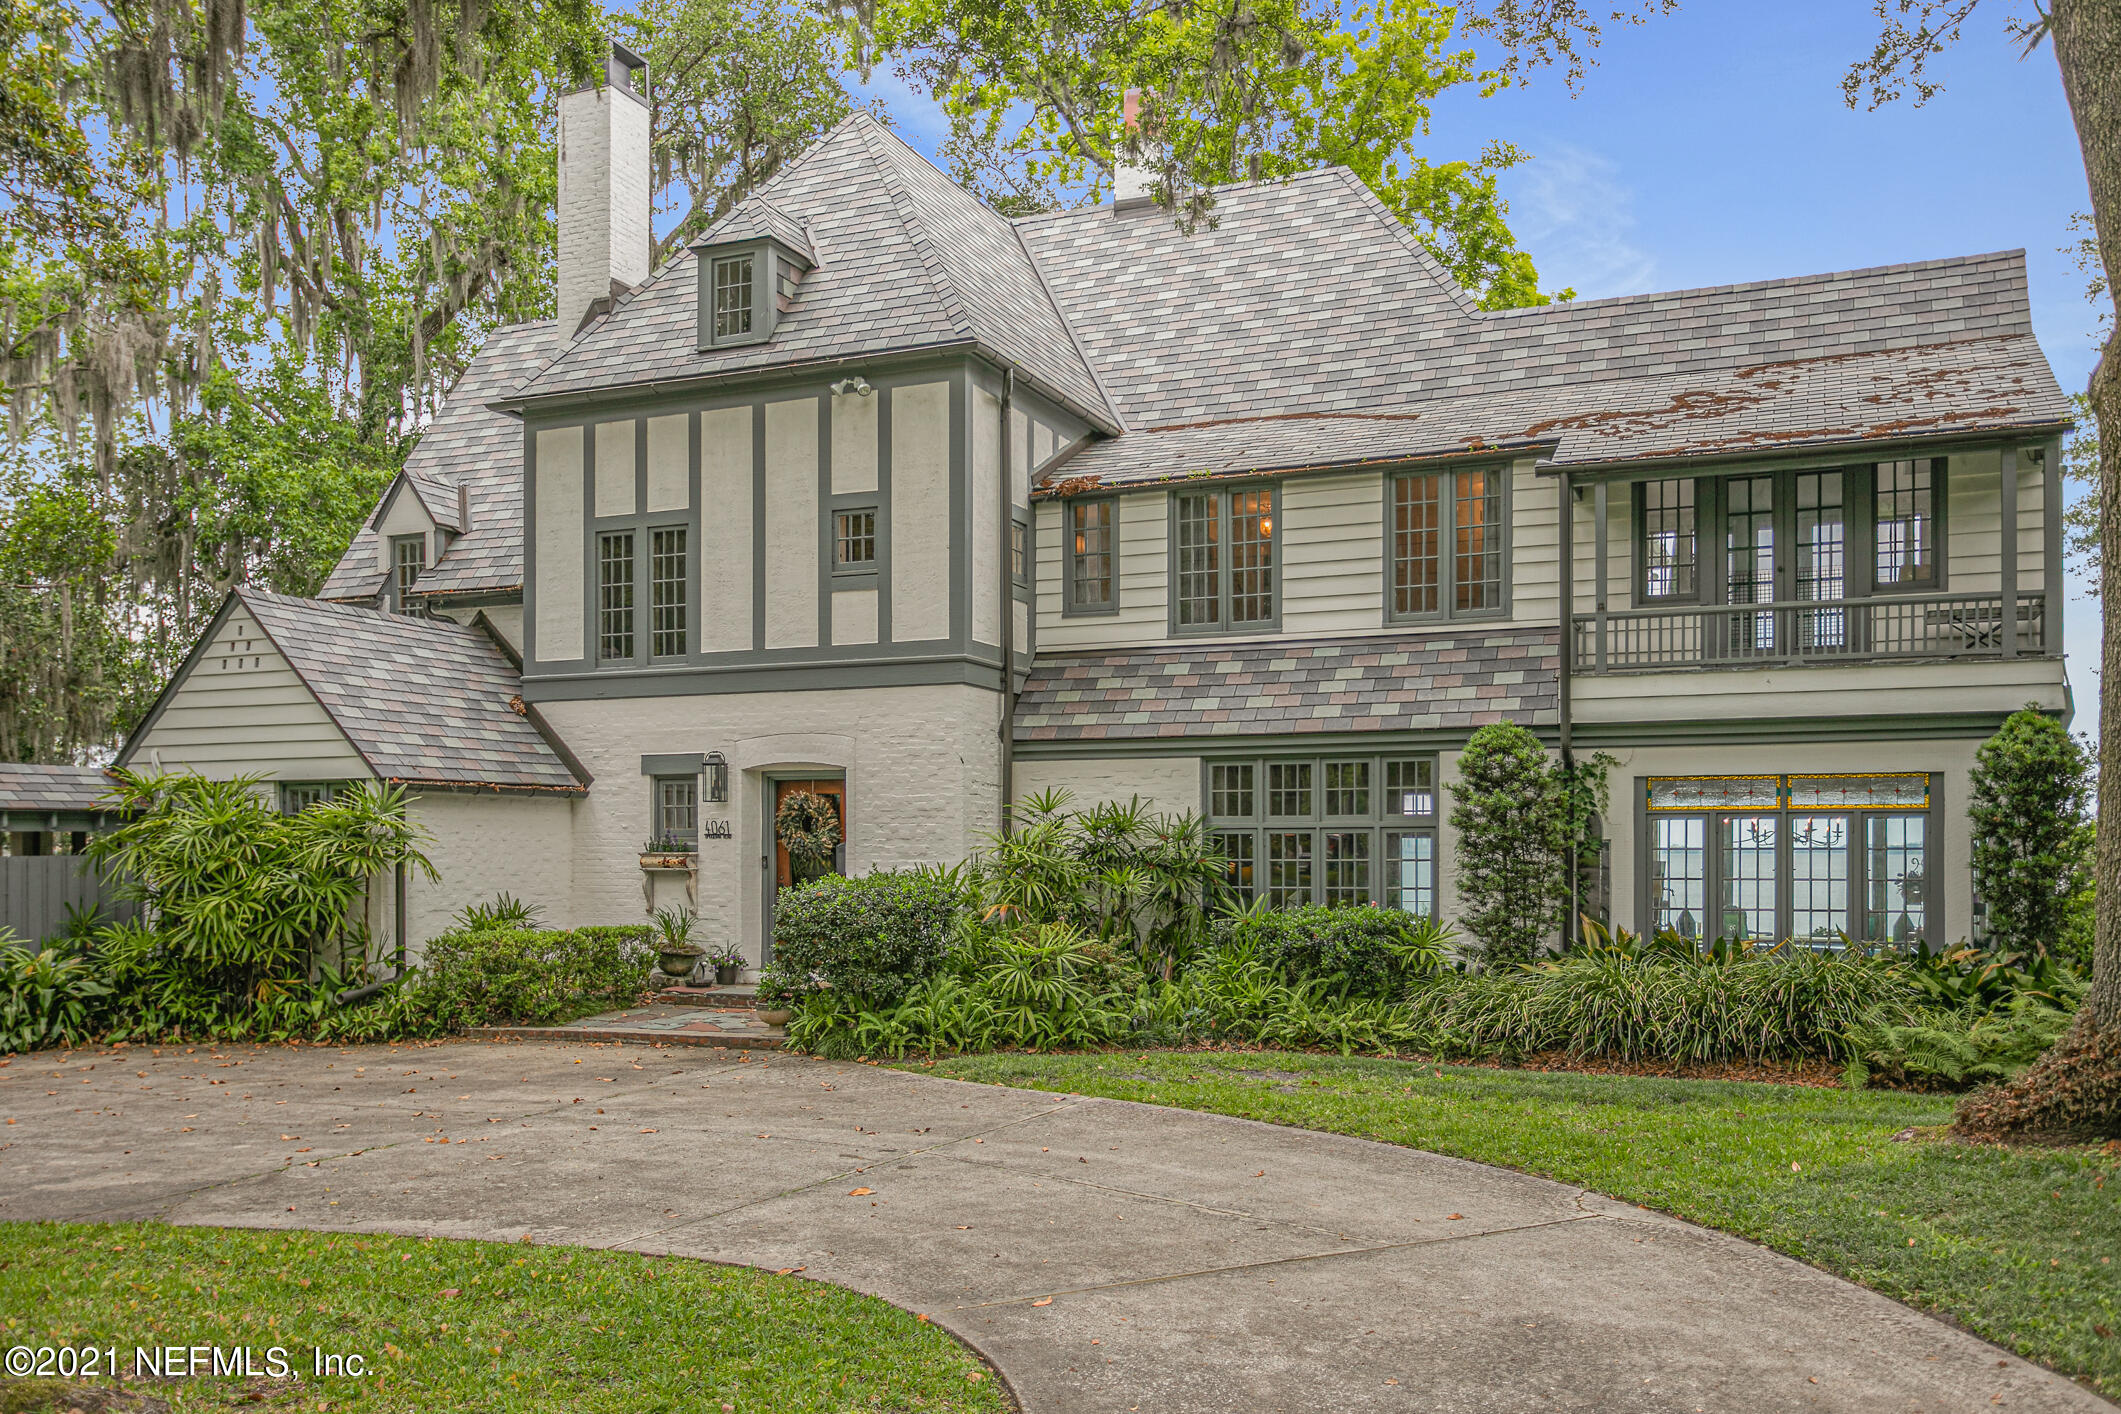 This classic manor has all the charm and character you would expect from this 1930's beauty. Custom-built as a Tudor estate and designed by famous American archiect, Melen Greeley. This home is a Jacksonville treasure with panoramic views of The St Johns River from every room. The three floors of living spaces are filled with timeless and rich details from flooring, doors, windows and moldings; including the detached guest suite, counted in the sq. footage. Current owner has modernized ALL the main components: NEW UPSCALE ROOF, NEW ELECTRICAL WIRING, NEW PLUMBING, NEW BATH FIXTURES BY HOLLINGSWORTH, NEW PAINT ON EXTERIOR & INTERIOR. Nestled between the Florida Yacht Club and Timuquana Counry Club, experience the Jacksonville lifestyle at its best. Clubs so close; hop, skip or float....